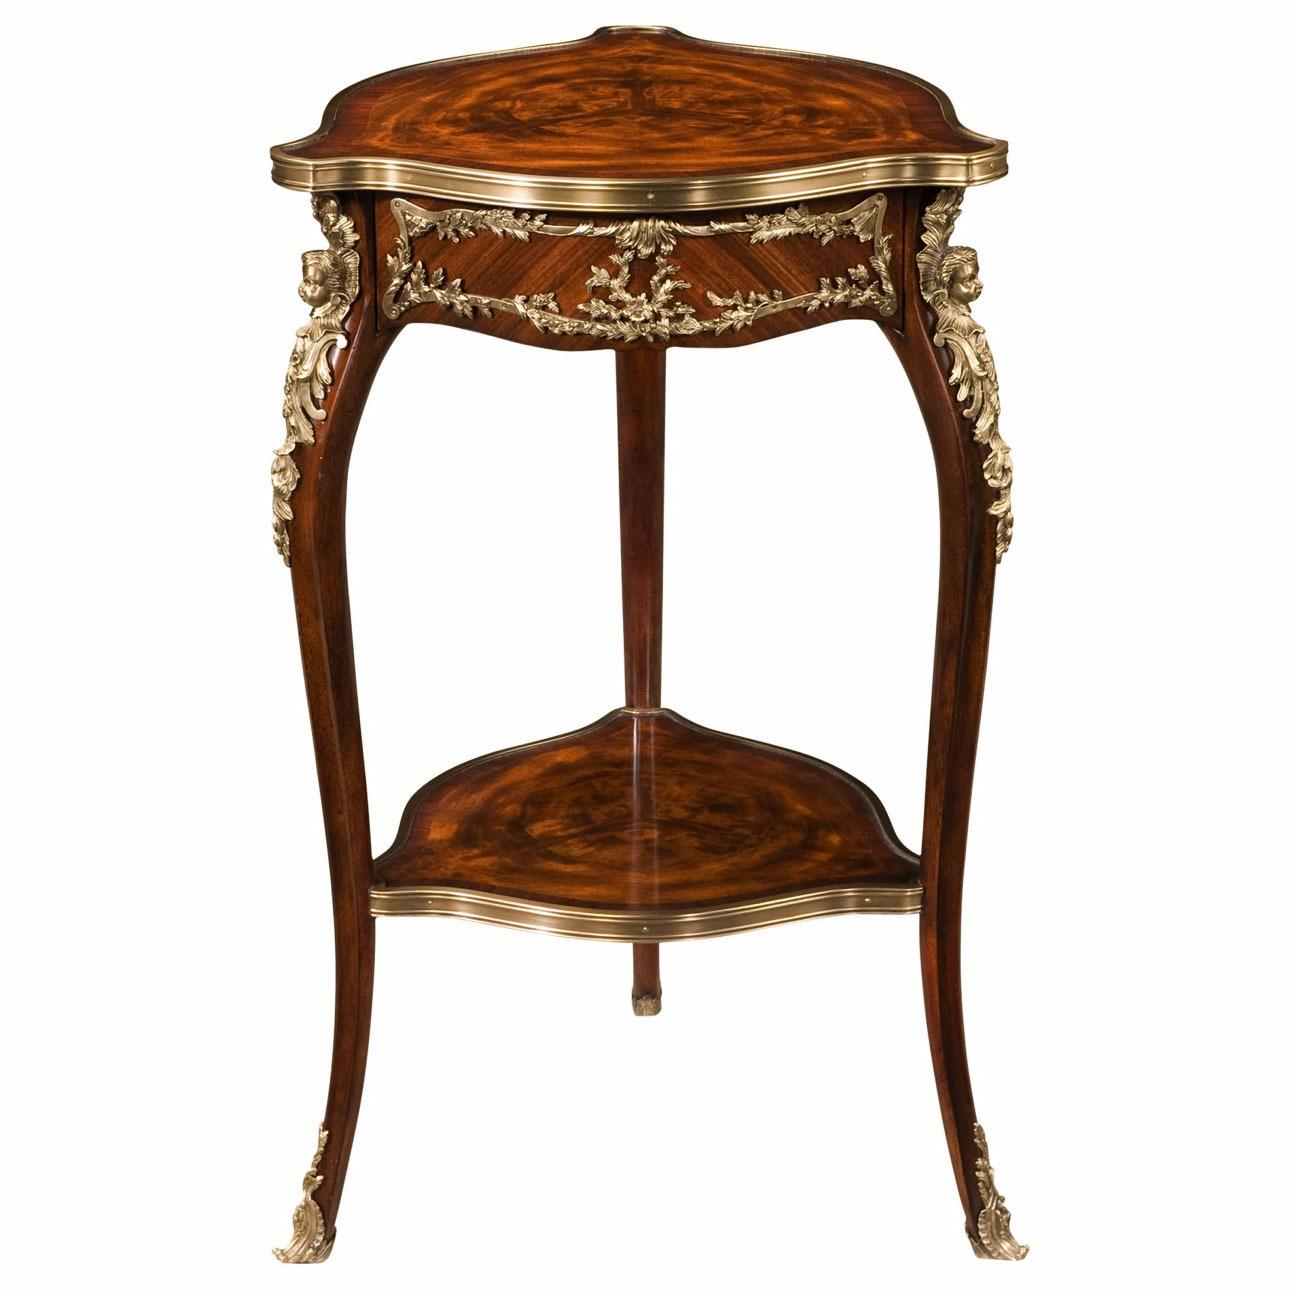 louis xv style mahogany and ormolu occasional table lamp side tables from brights of nettlebed. Black Bedroom Furniture Sets. Home Design Ideas